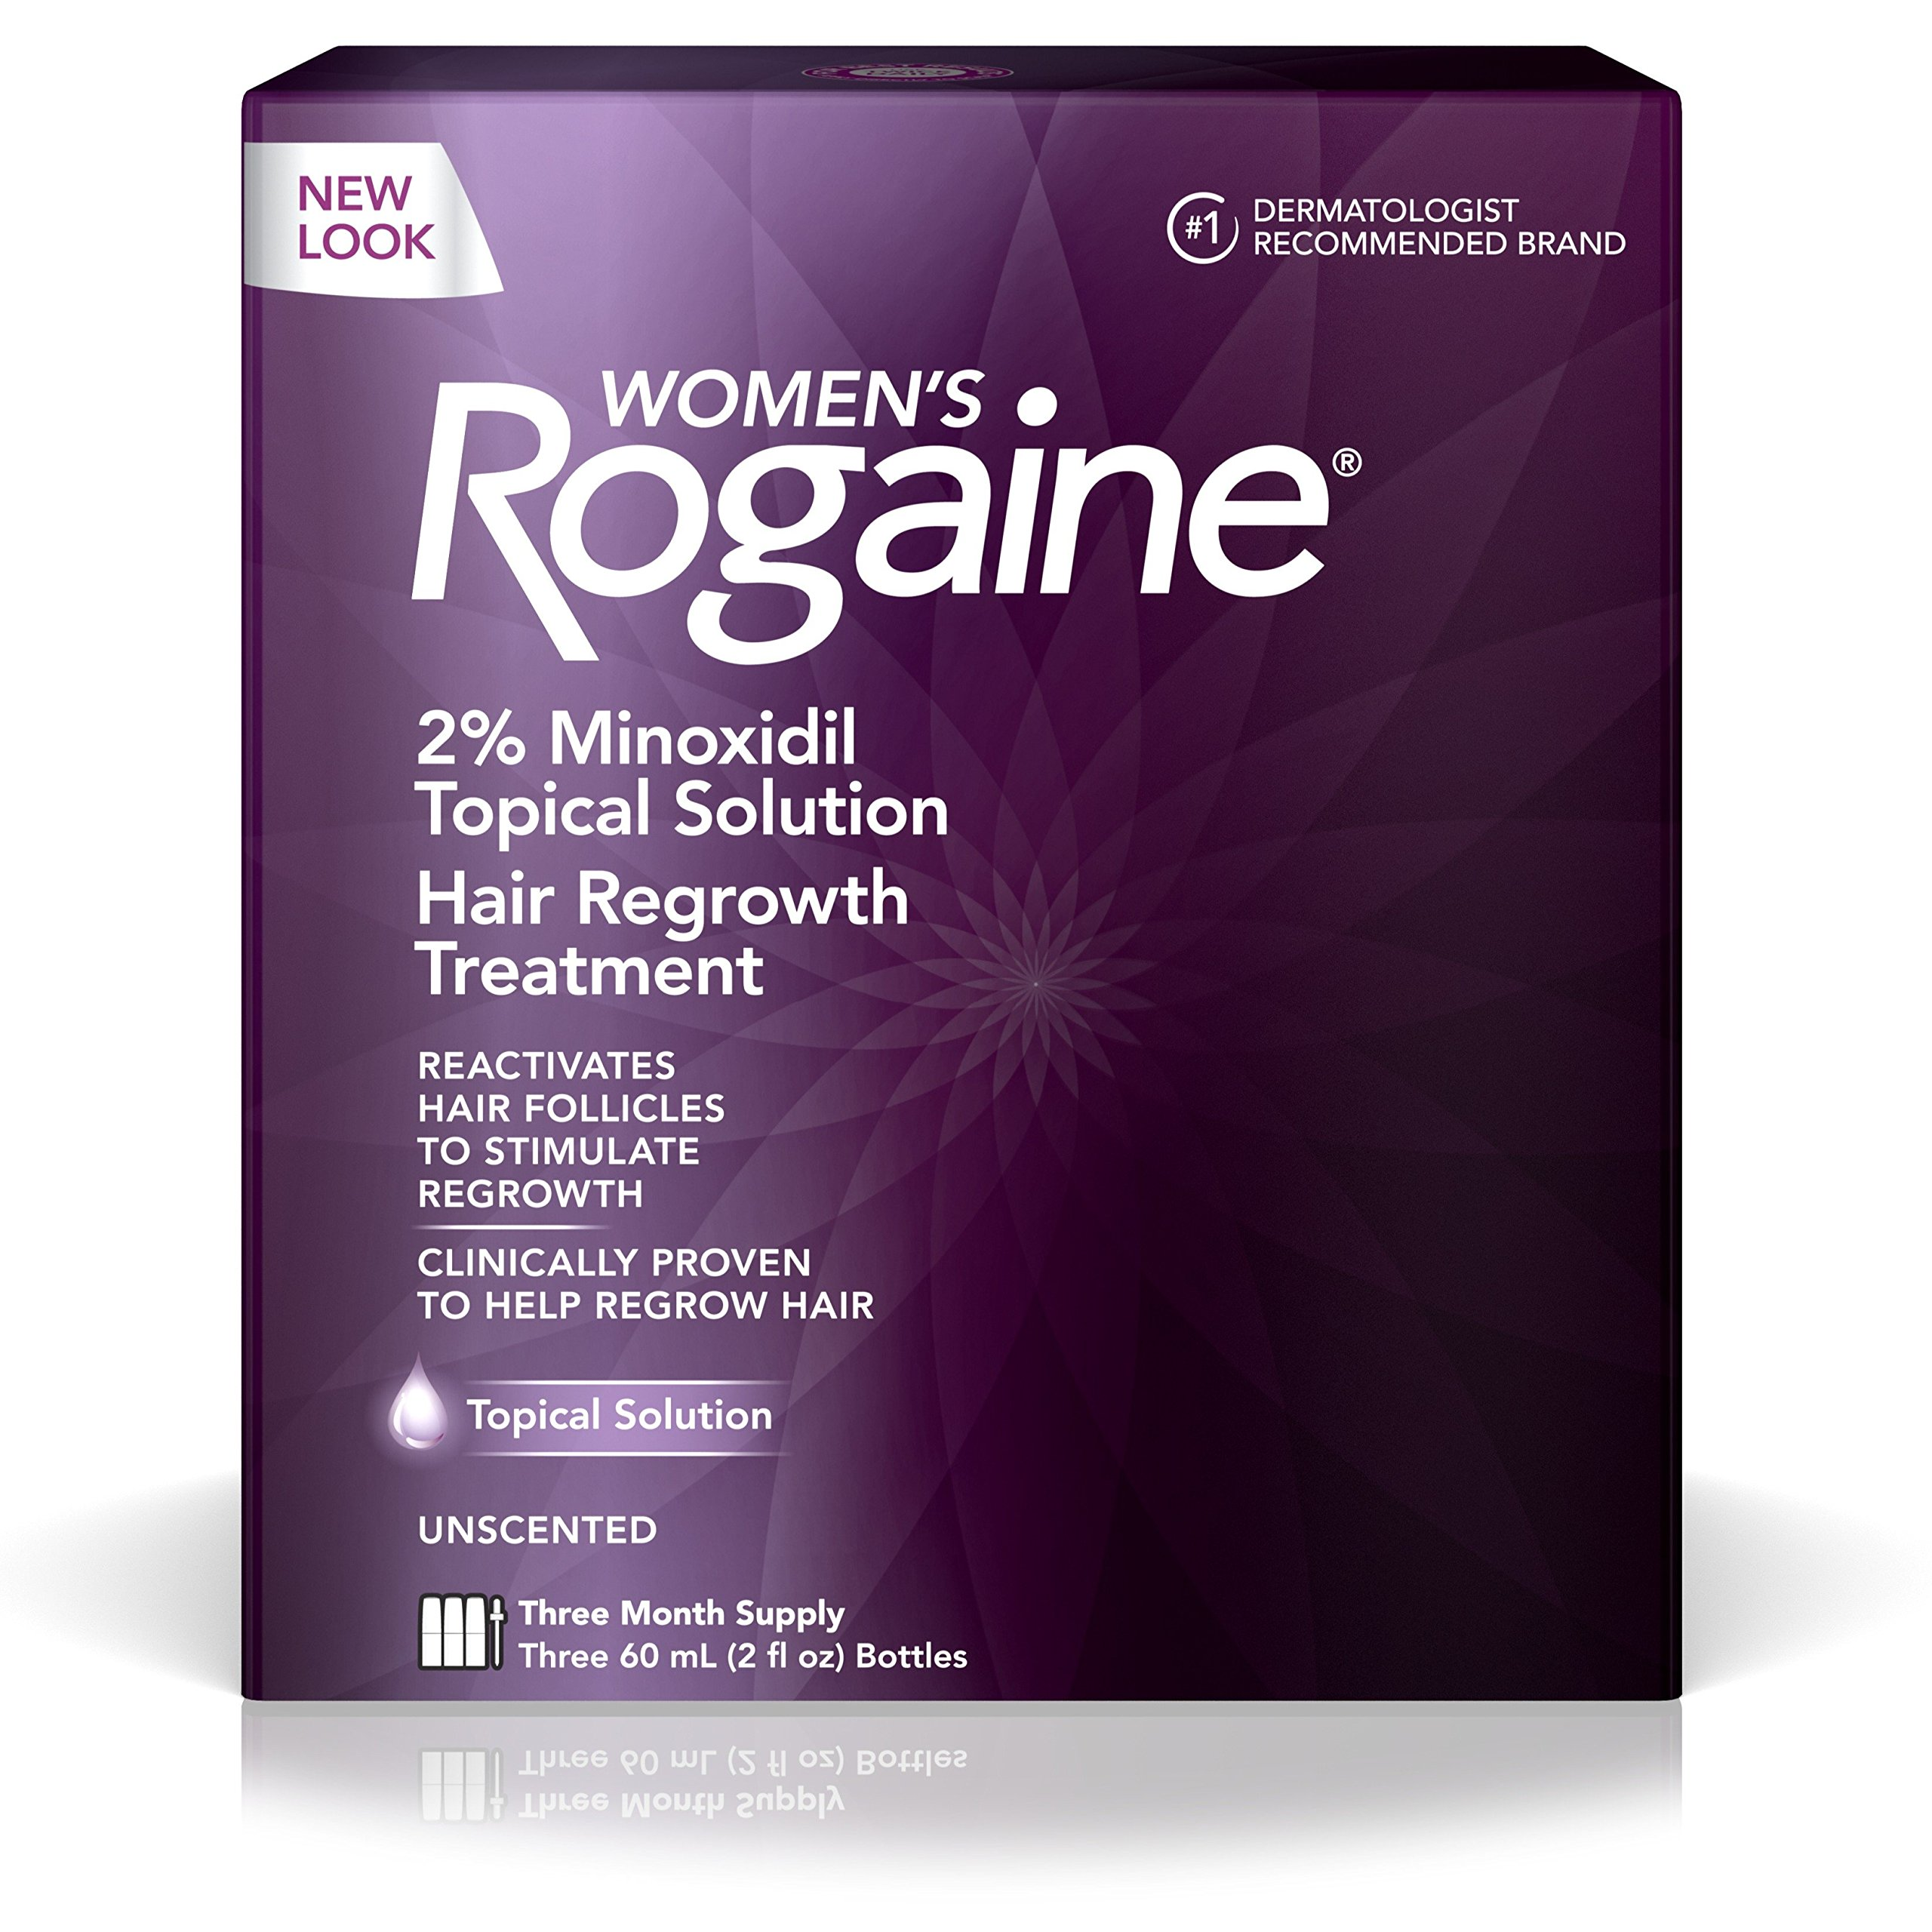 Women's Rogaine 2% Minoxidil Topical Solution for Hair Thinning and Loss, Topical Treatment for Women's Hair Regrowth, 3-Month Supply by Rogaine